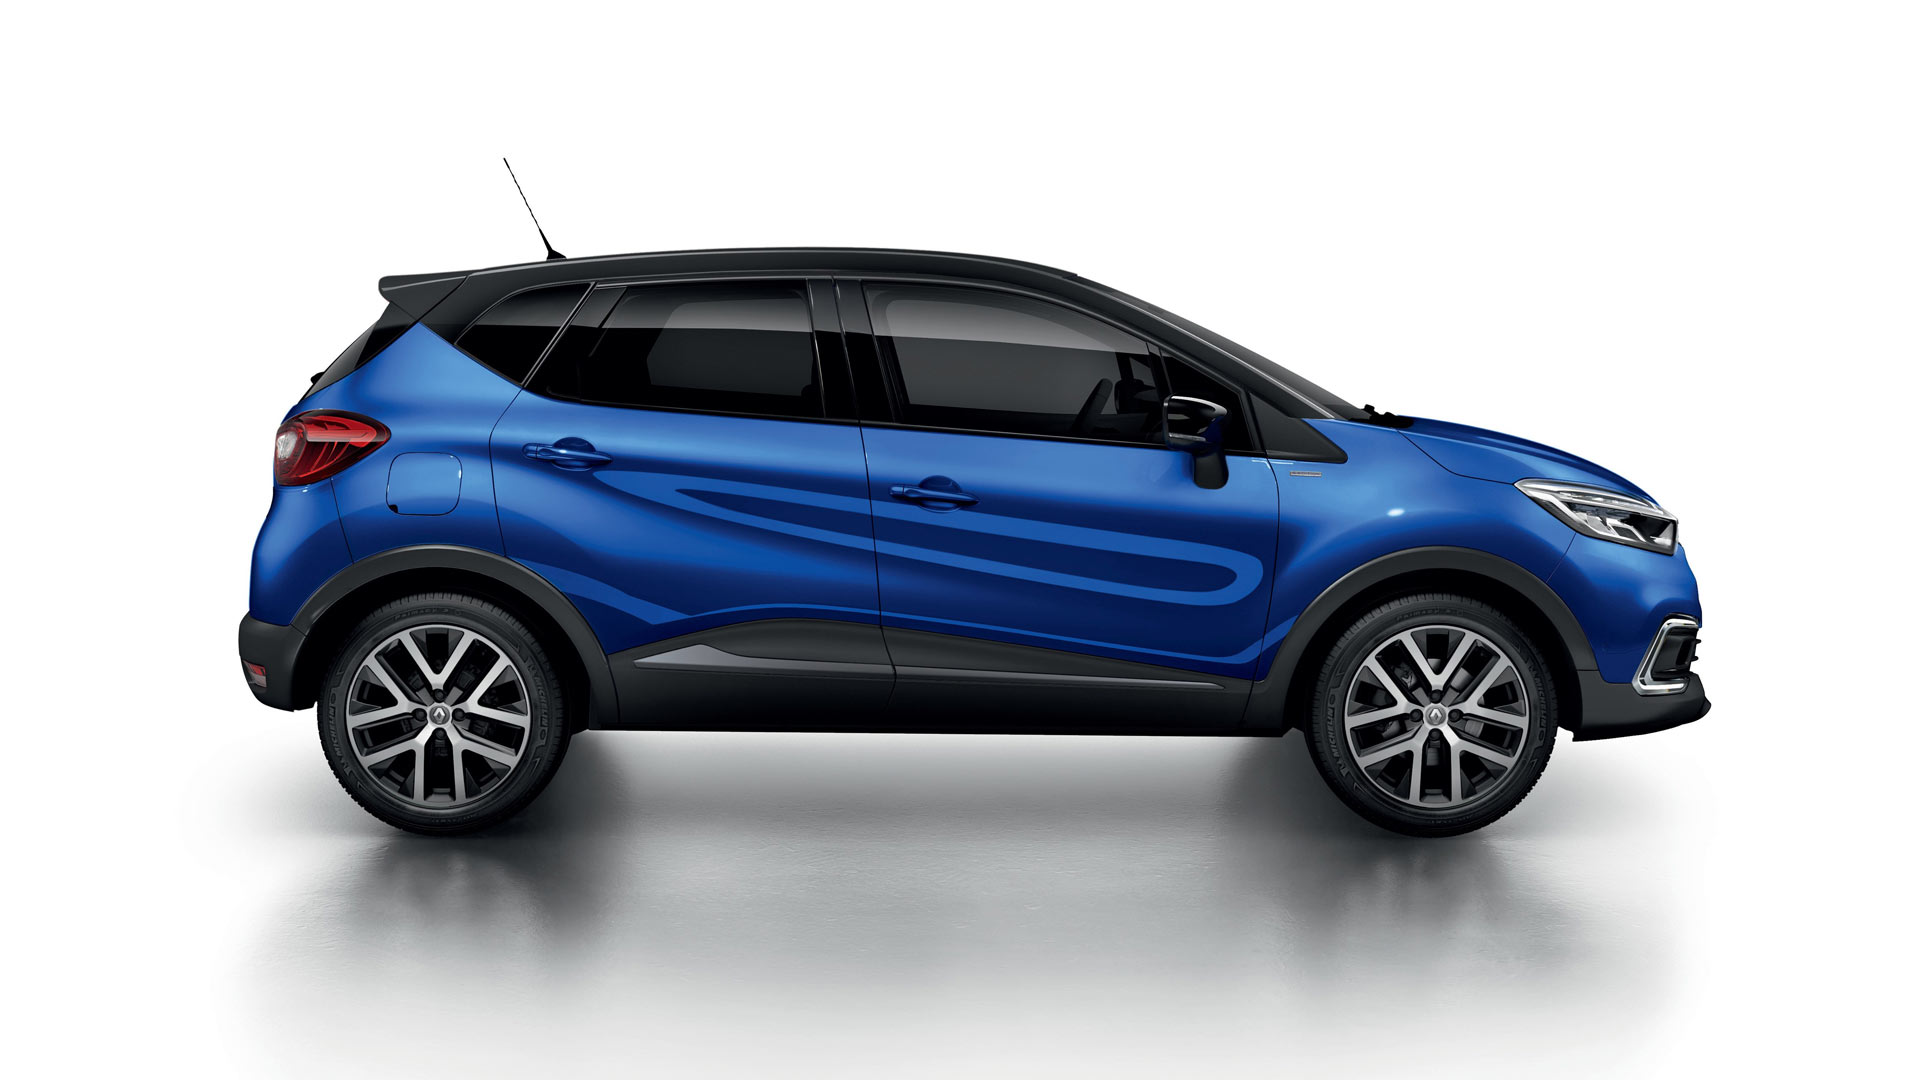 Renault Captur S Edition Gets More Power And Style Autodevot